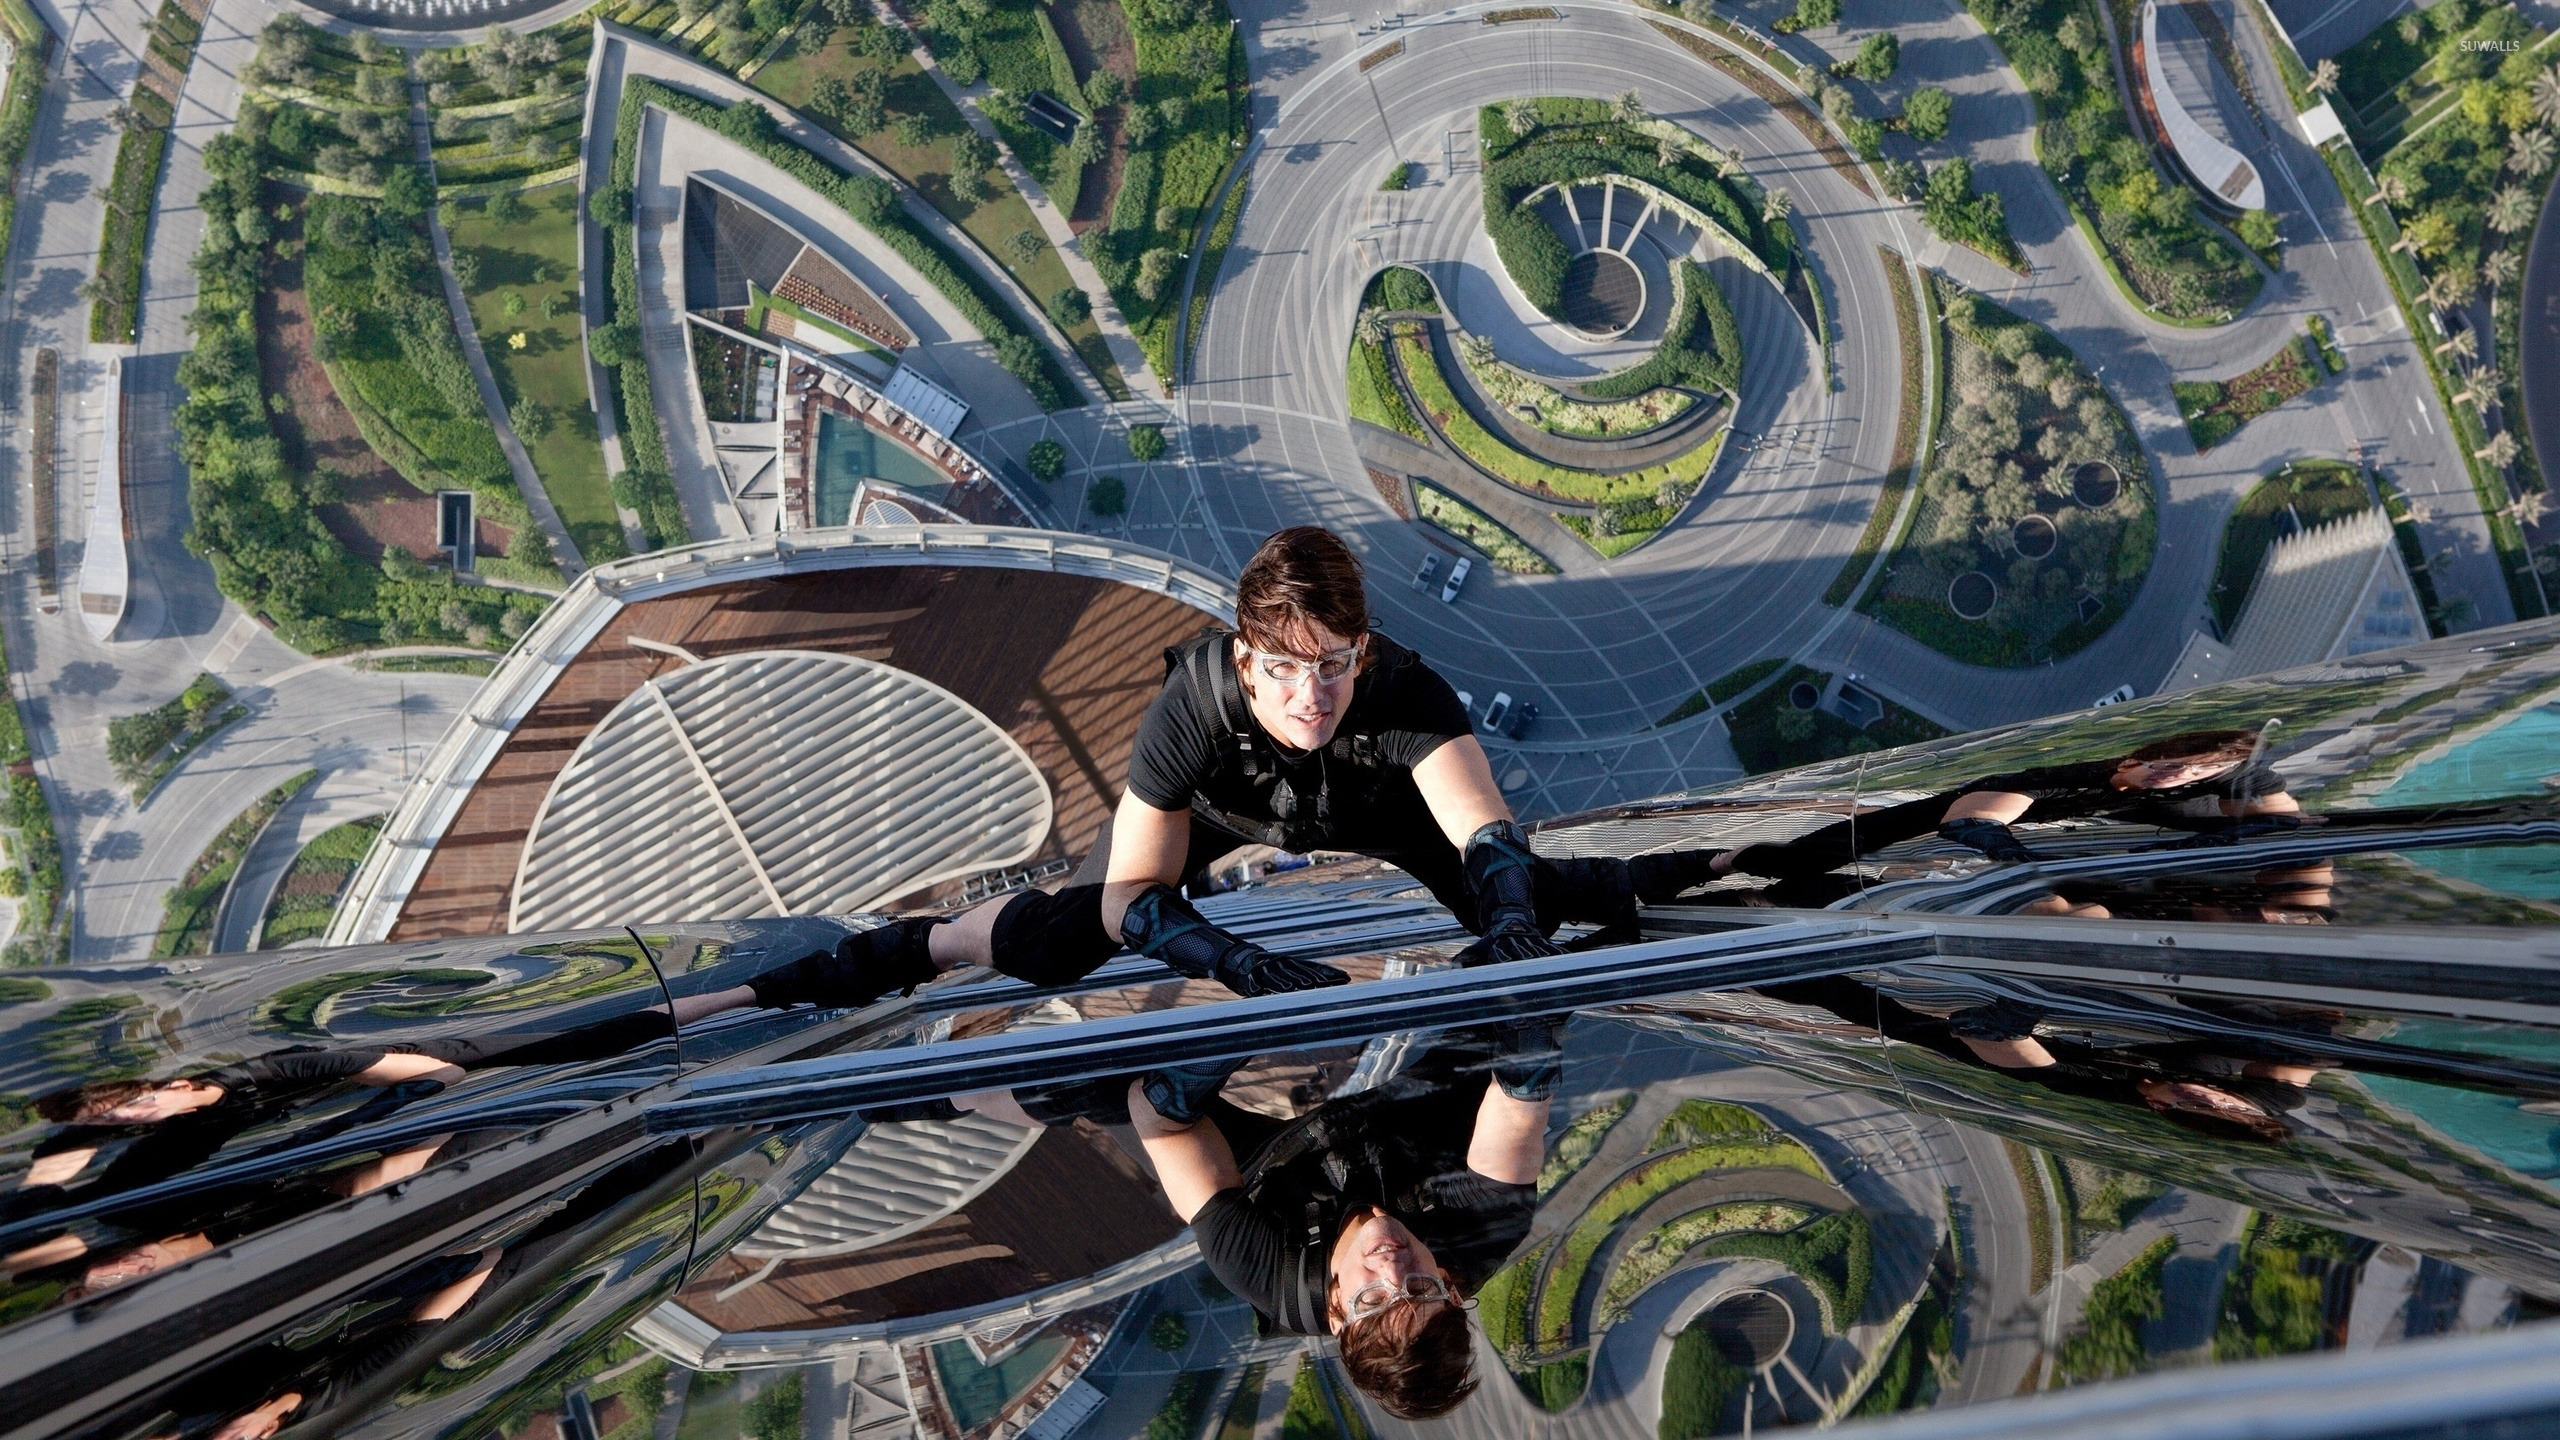 mission-impossible-ghost-protocol-45389-2560x1440.jpg